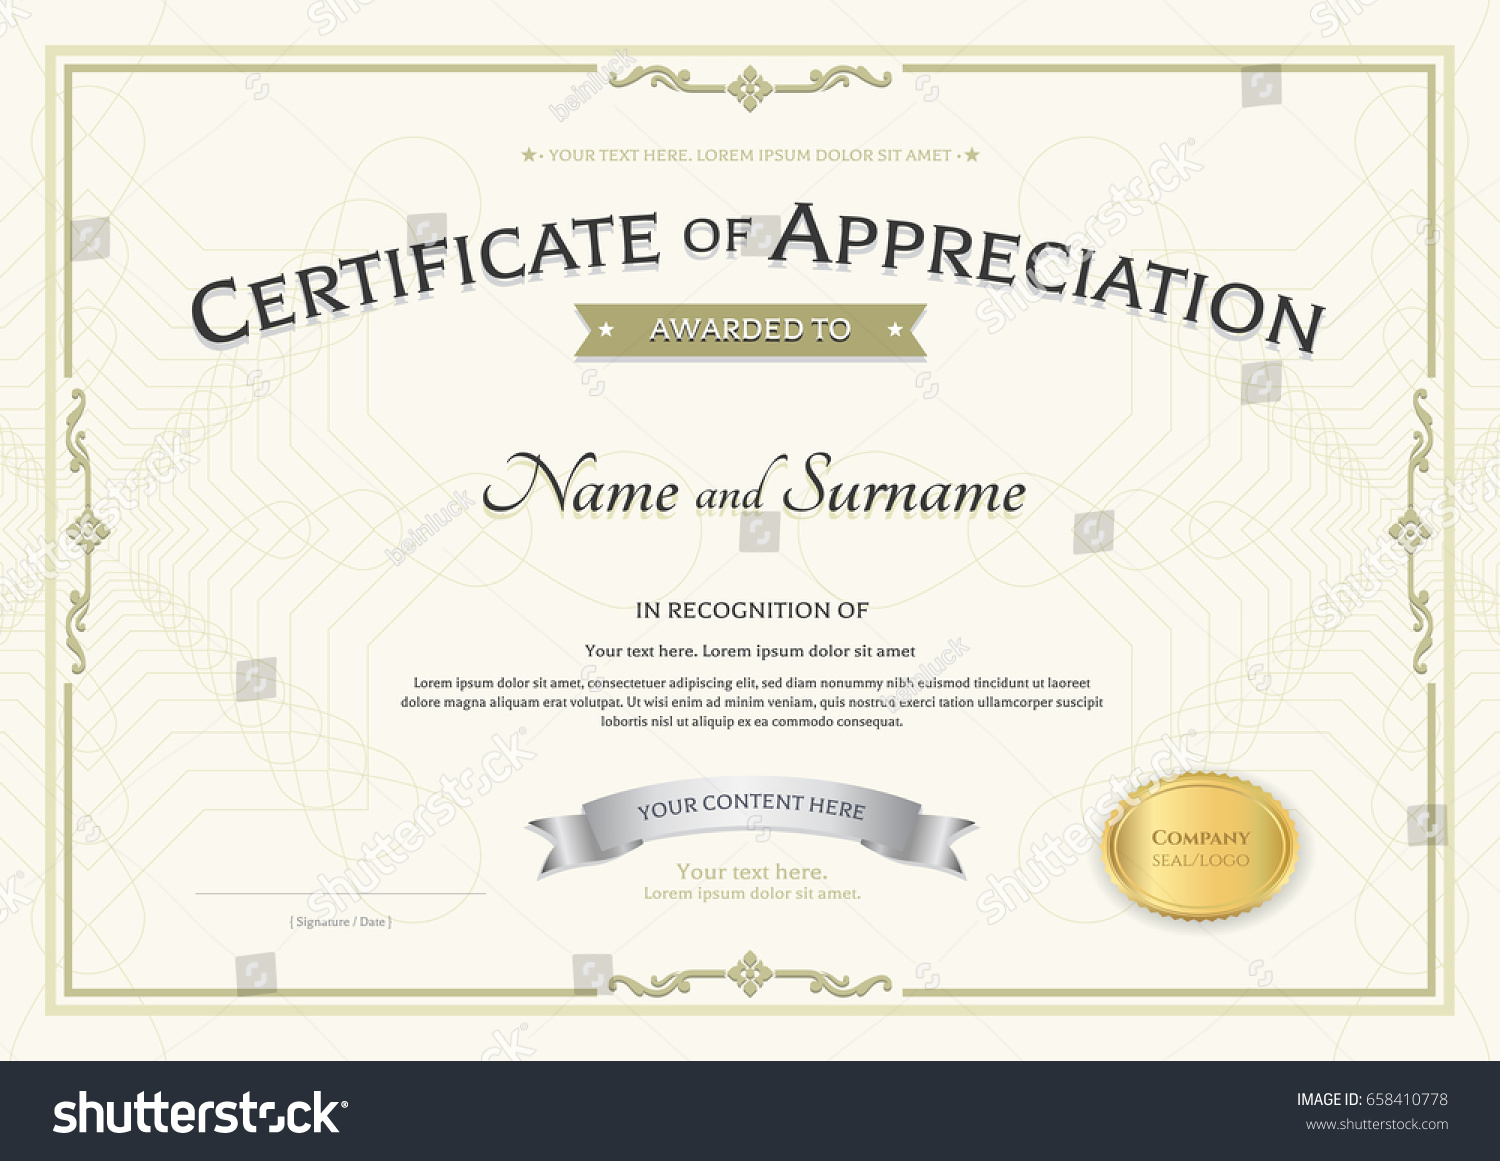 Certificate appreciation template silver award ribbon stock vector certificate of appreciation template with silver award ribbon on abstract guilloche background with vintage border style yelopaper Images